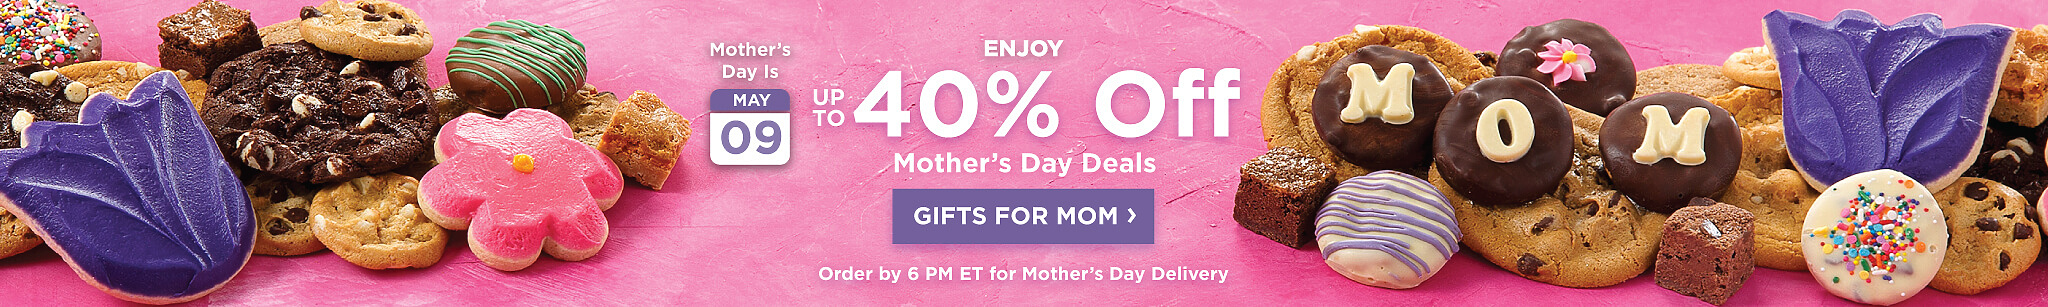 Up To 40% off Mother's Day Deals. Shop Gifts For Mom. Order by 6pm ET for Mother's Day Delivery.